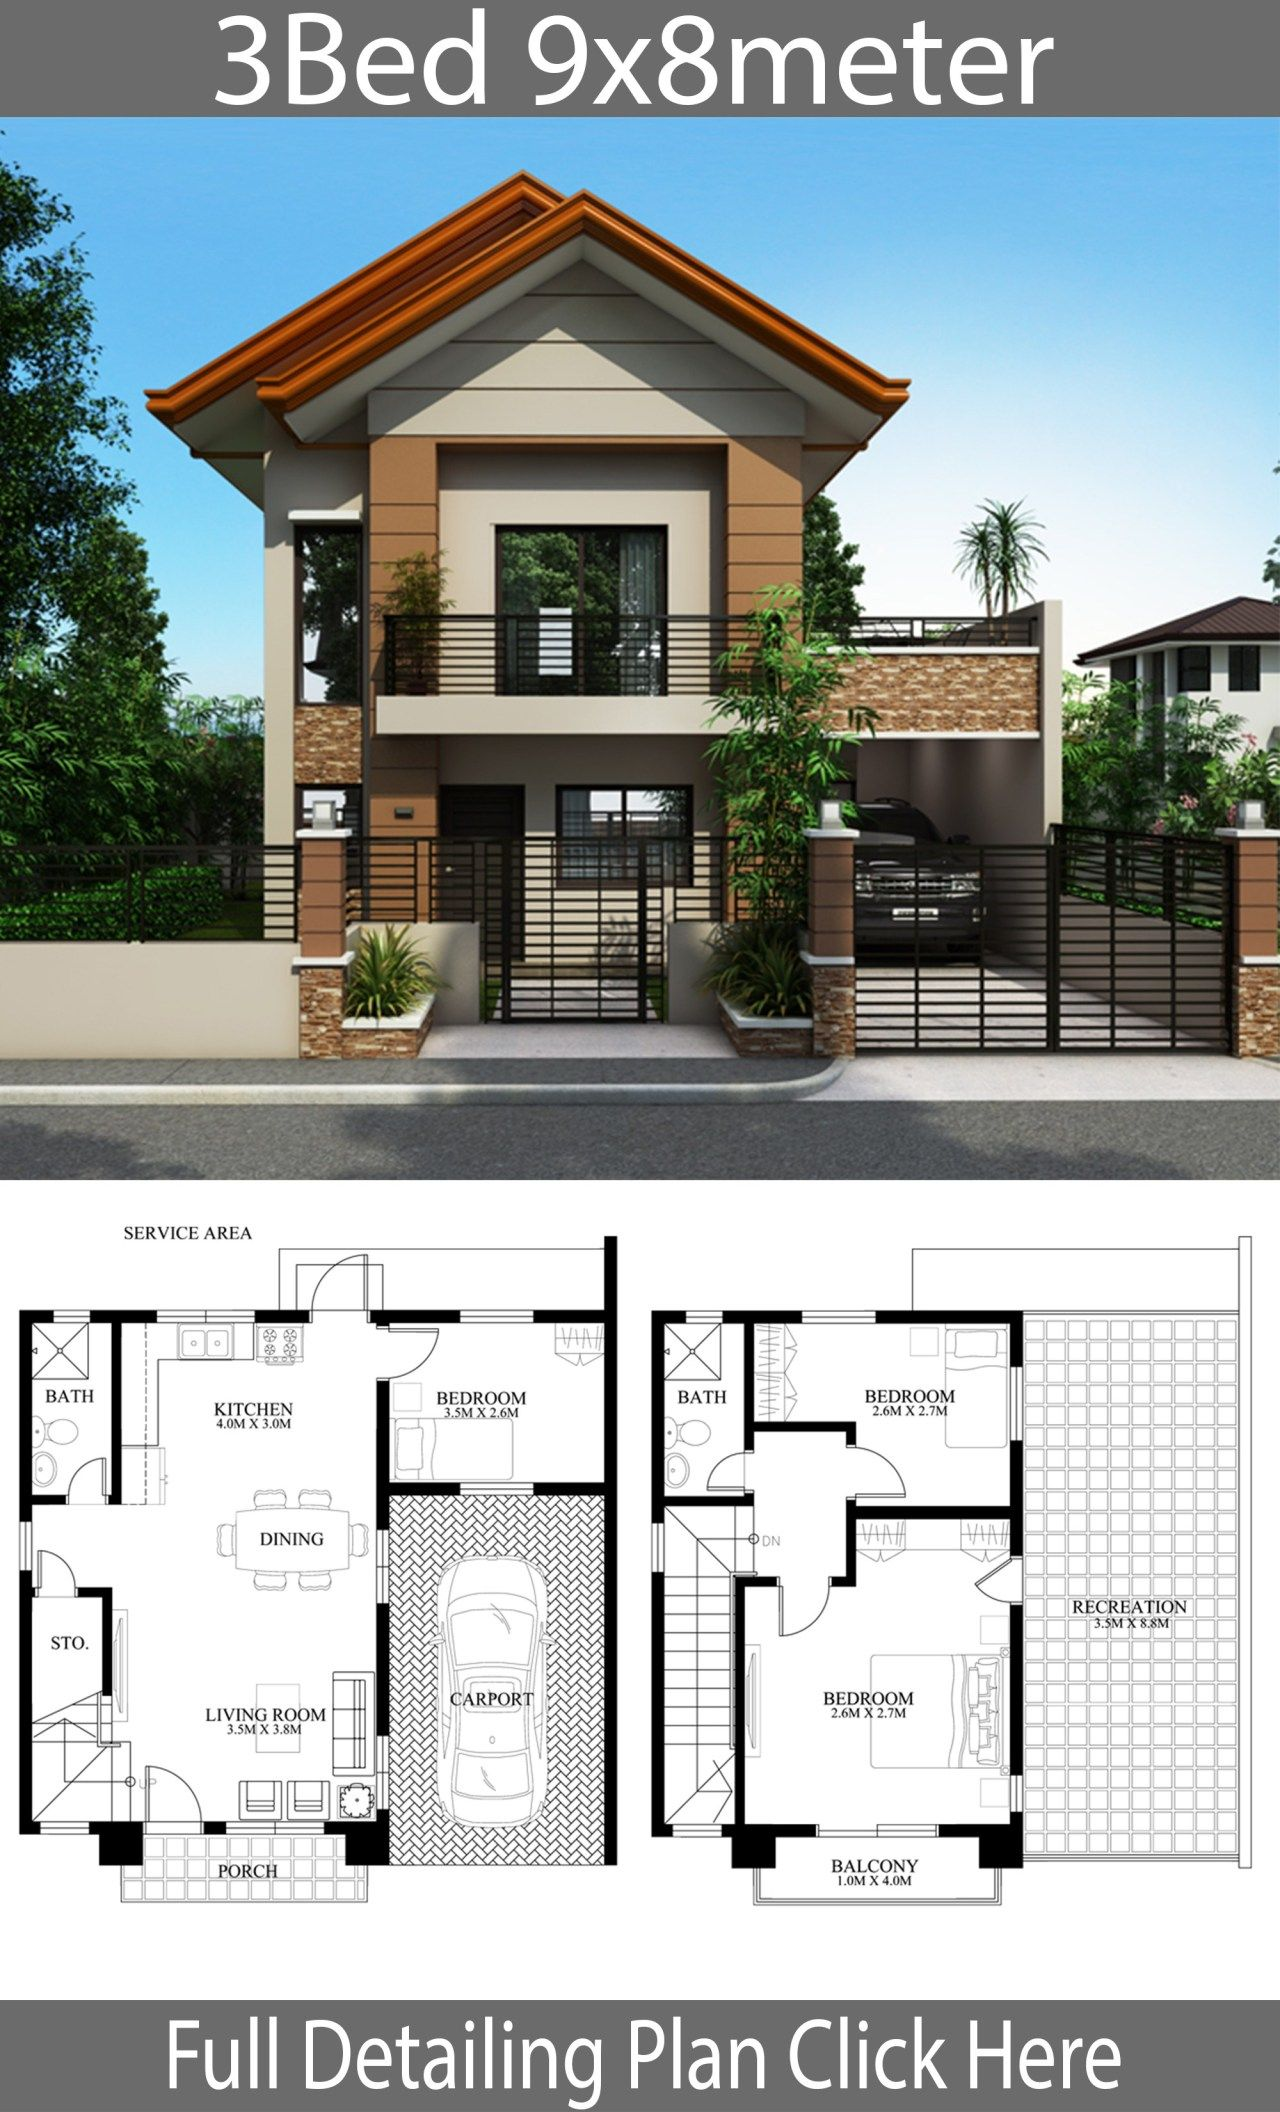 Home Design Plan 9x8m With 3 Bedrooms Home Ideas Philippines House Design Modern House Floor Plans 2 Storey House Design